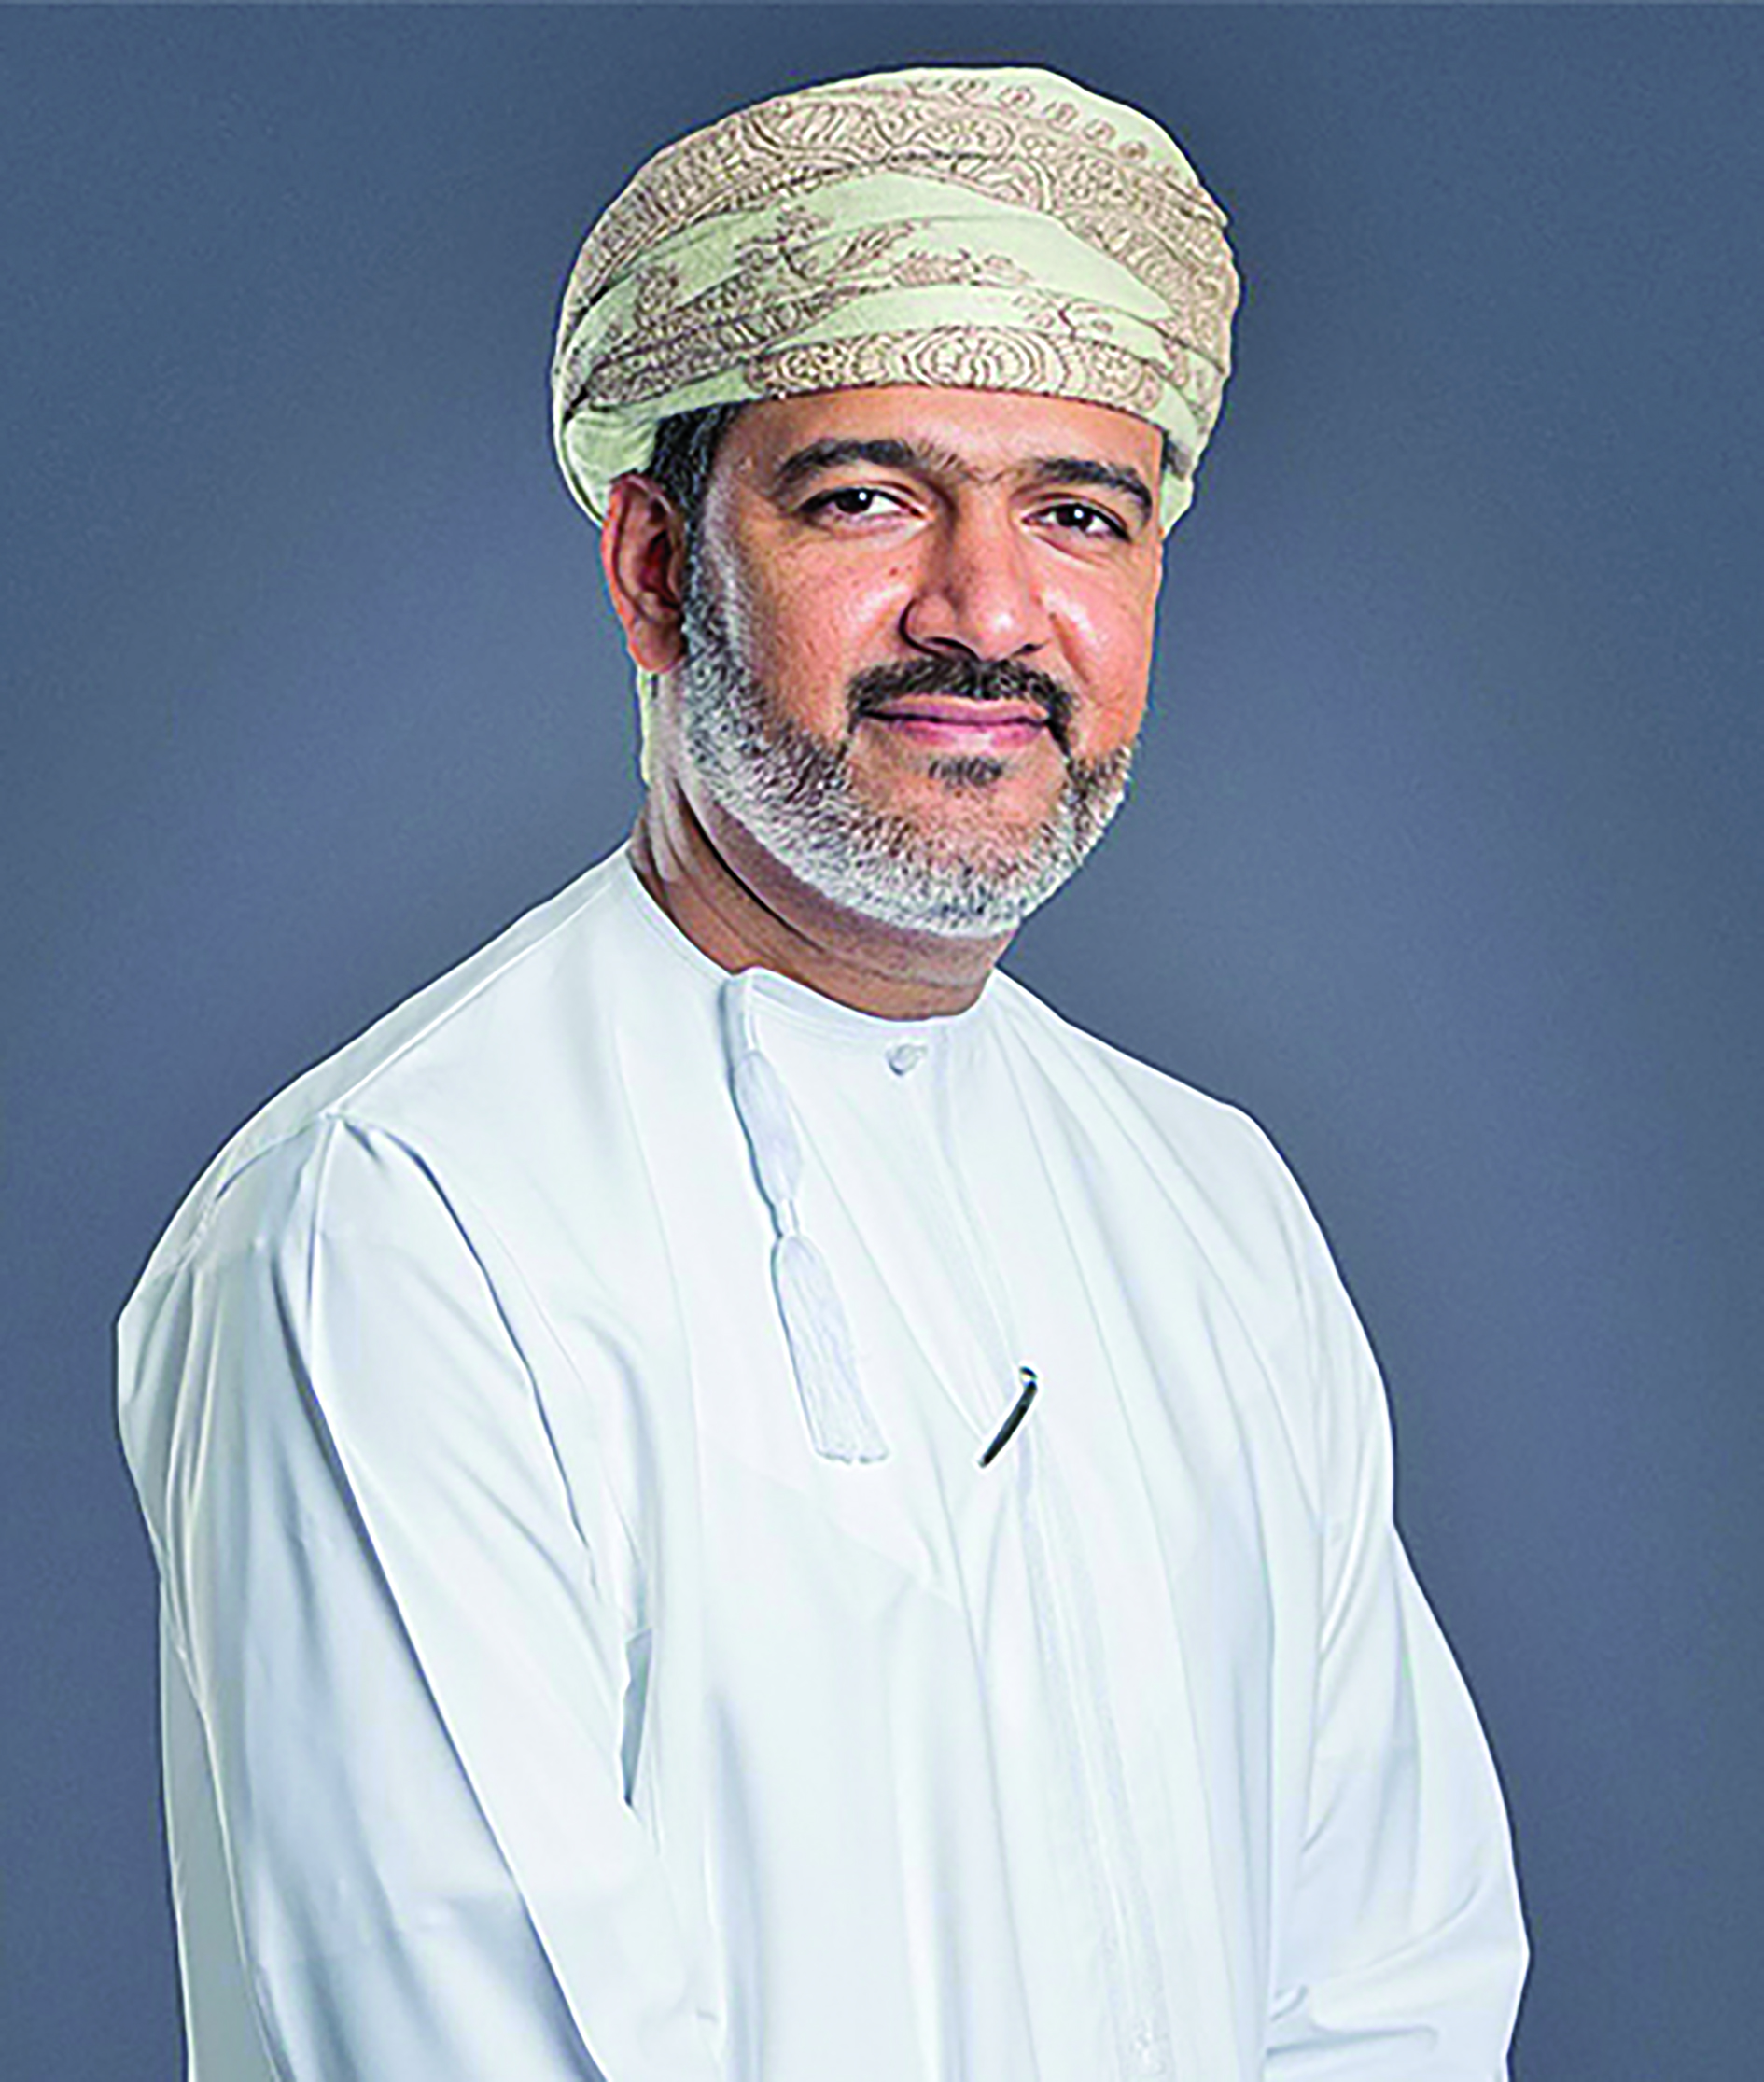 Express mail to your address within 24hrs — Oman Post Chief